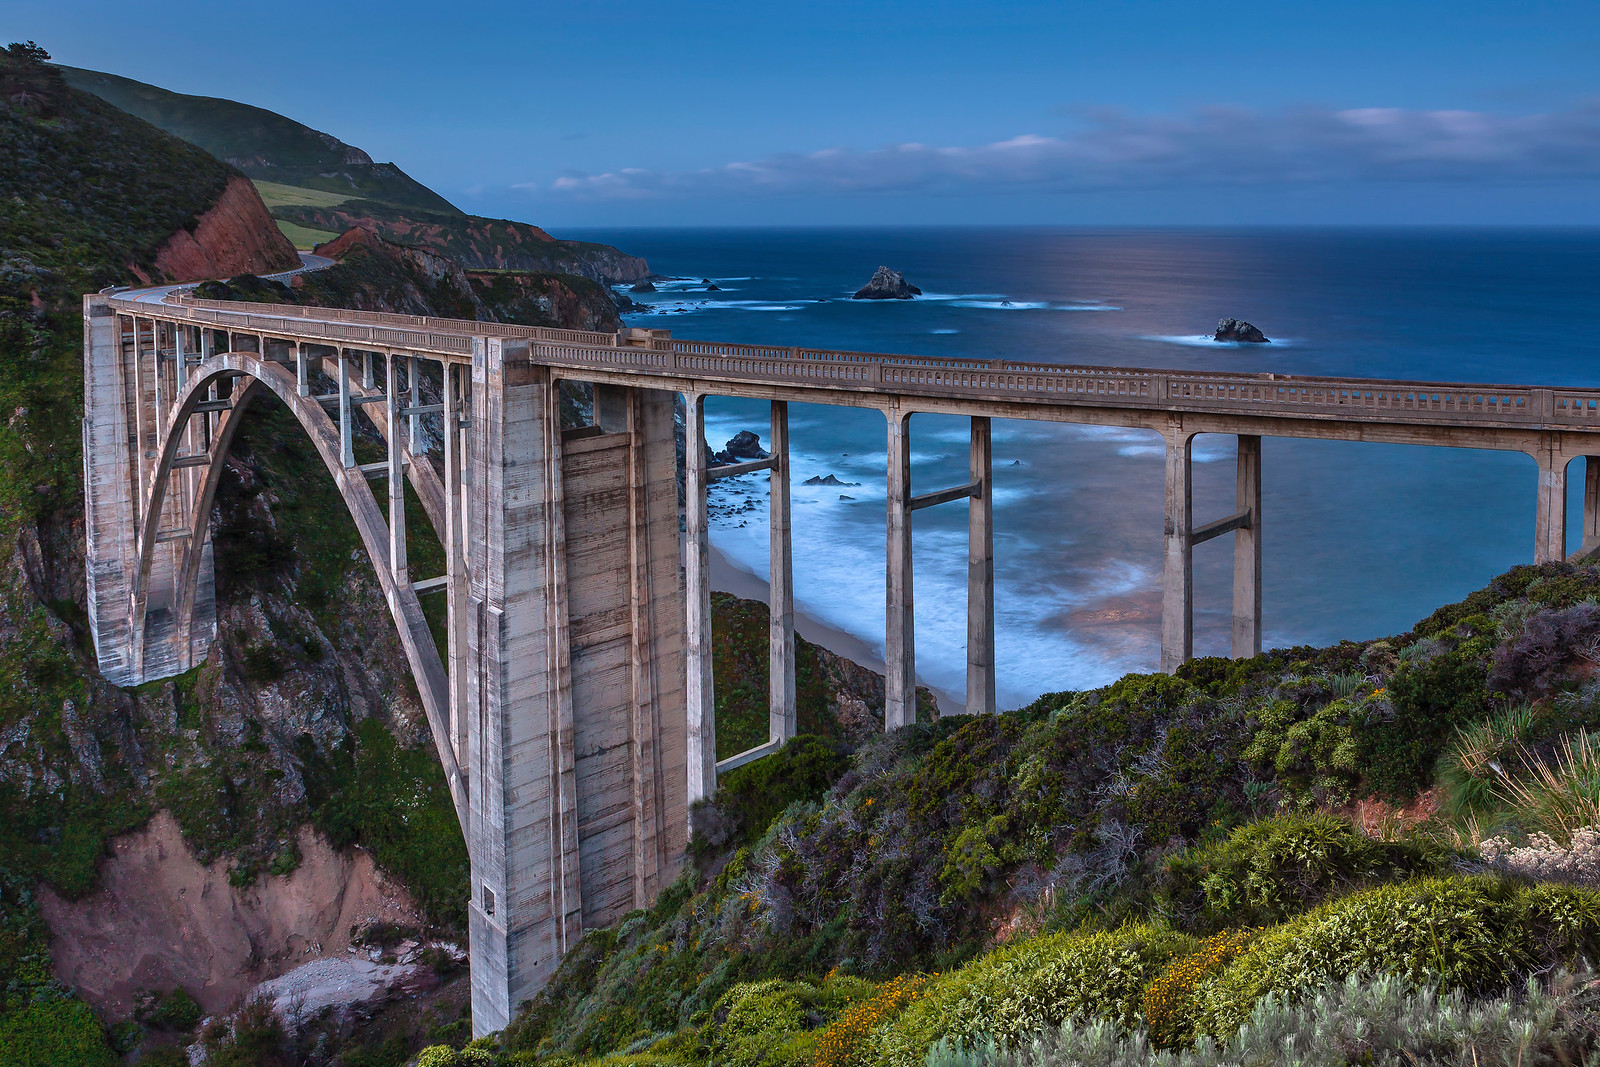 Bixby Bridge at dusk with setting moonlight on the water